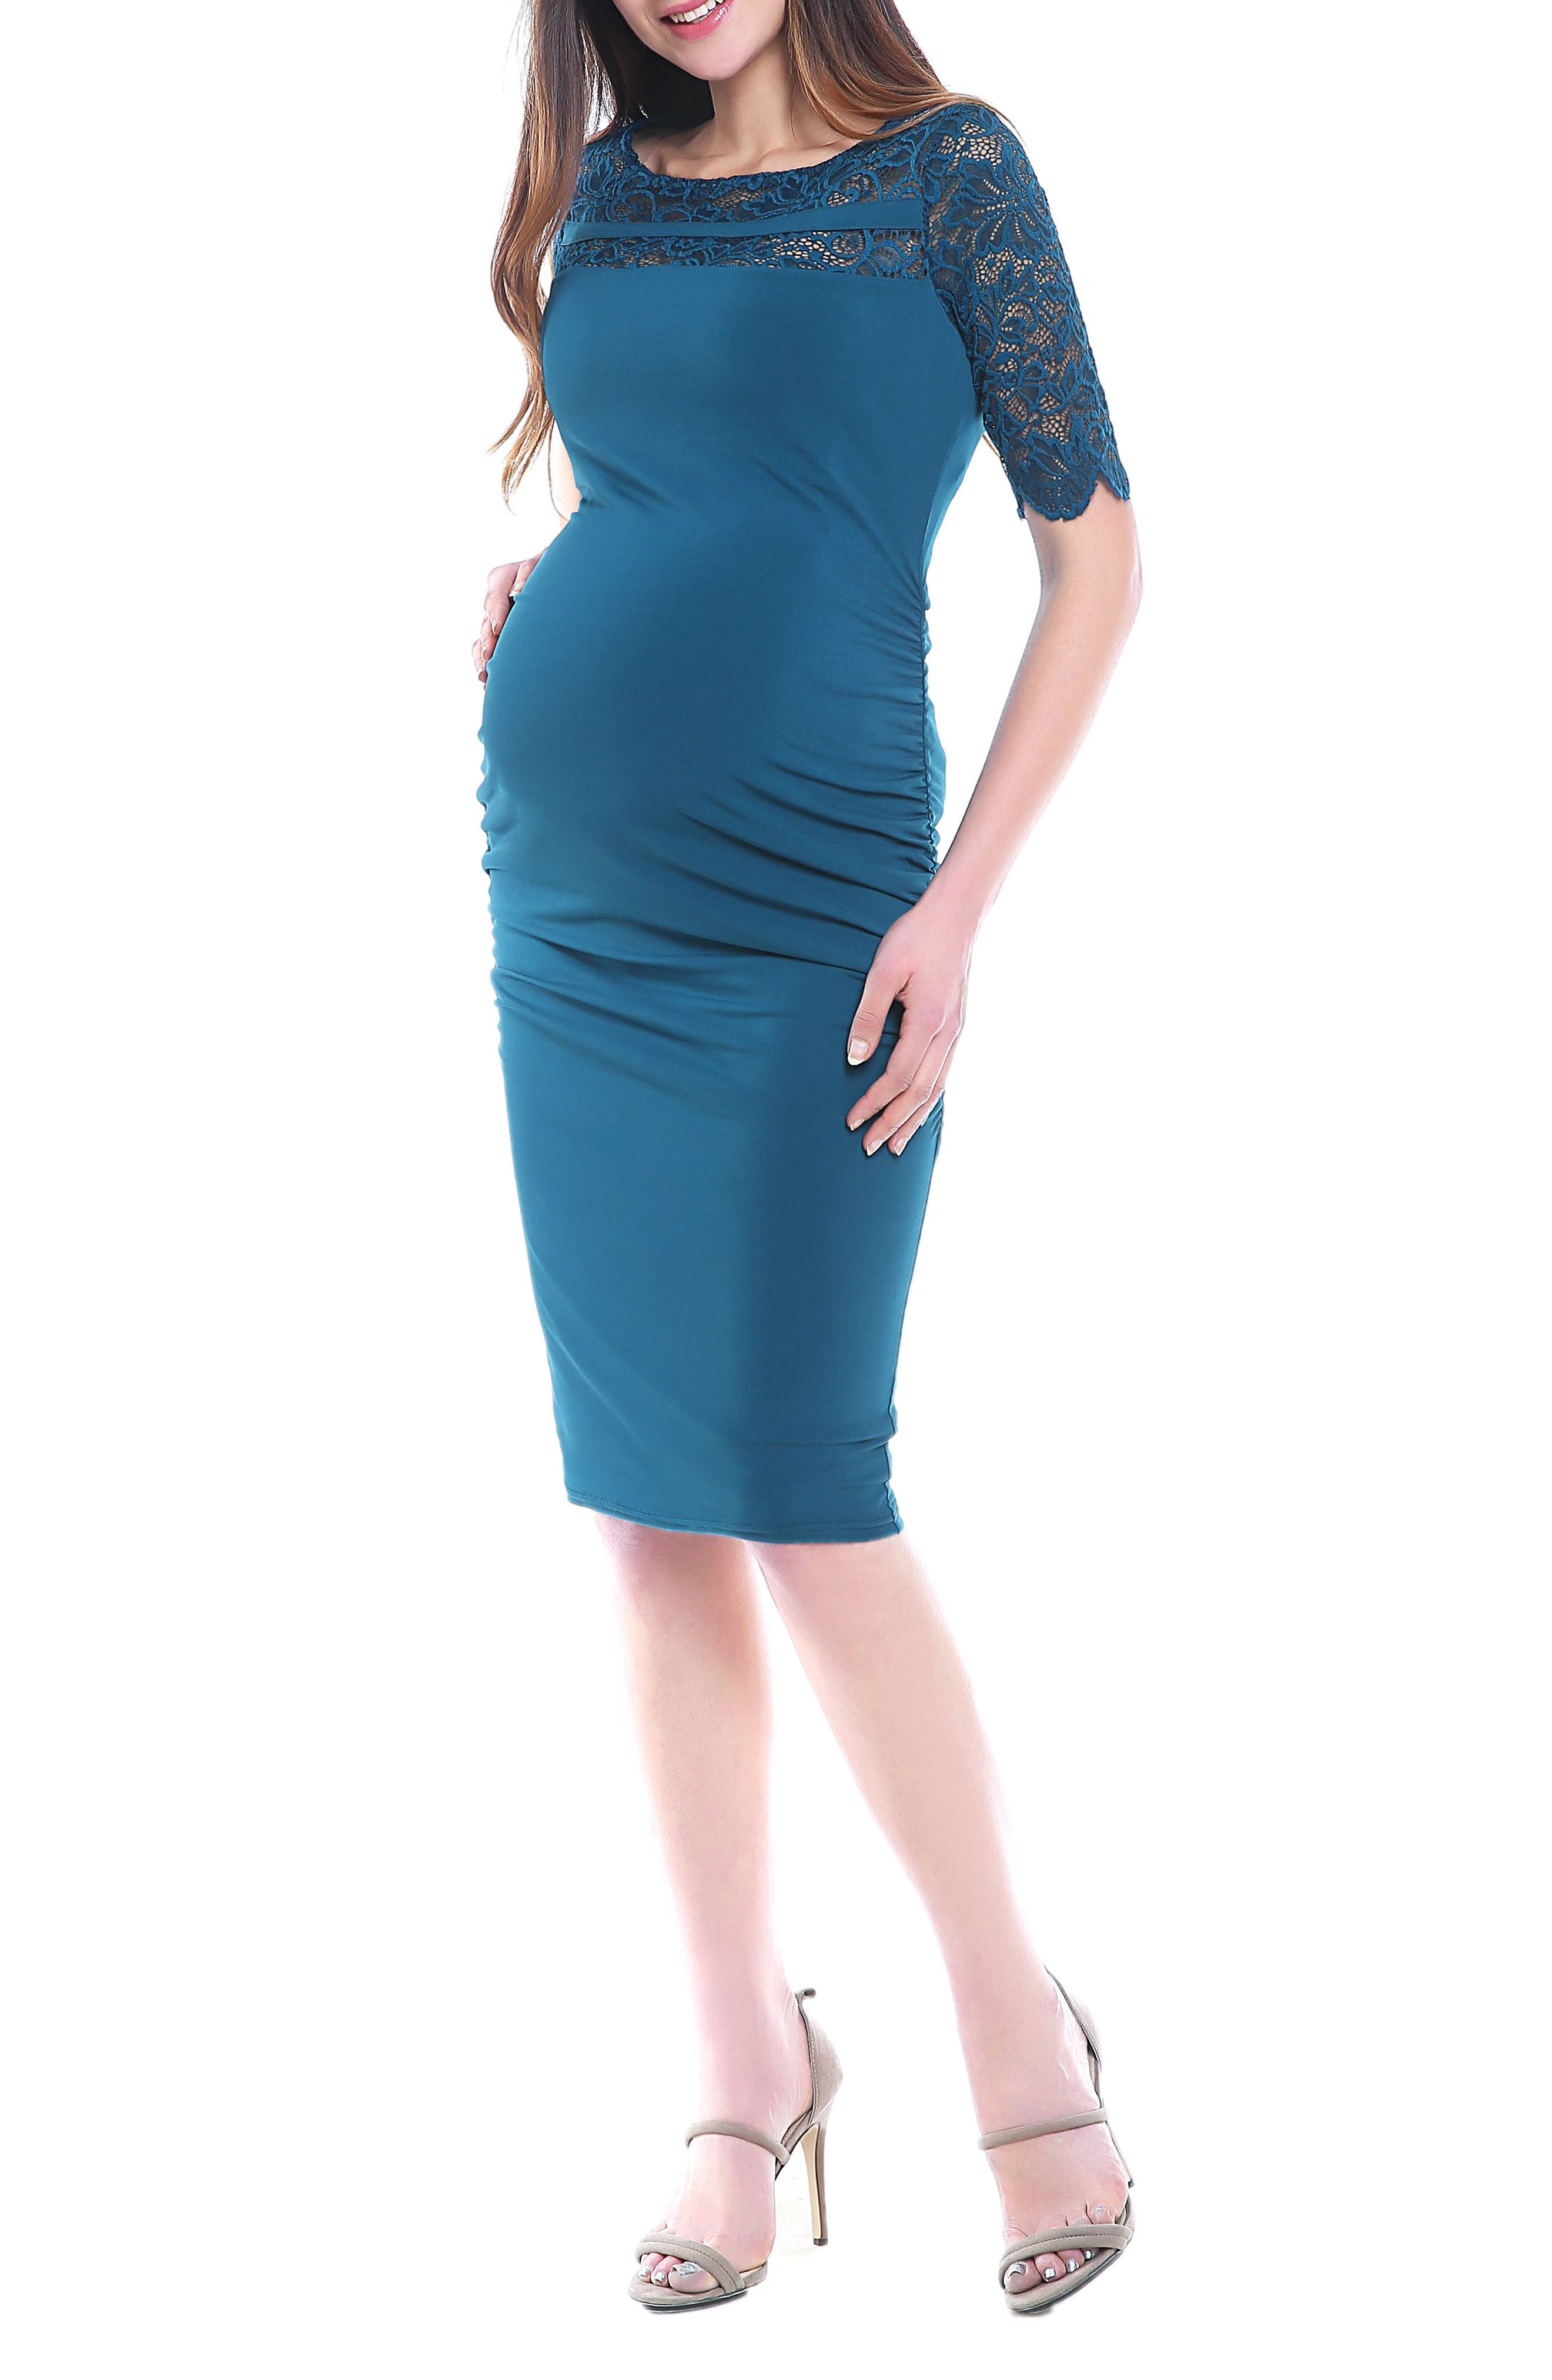 Maternity Sailor Outfit